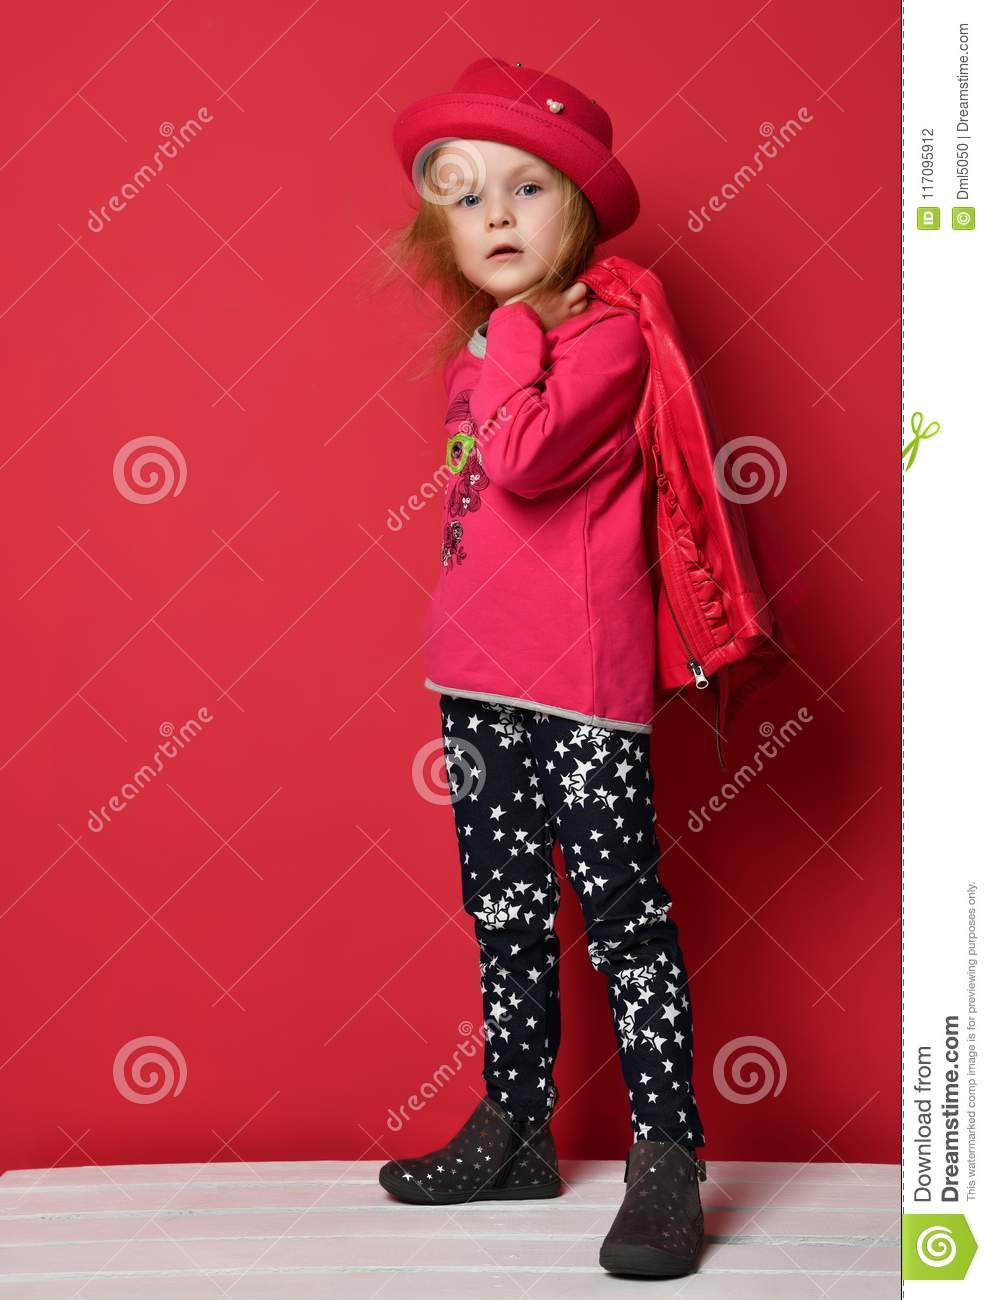 Five years old baby girl child kid posing in red leather jacket and hat on red